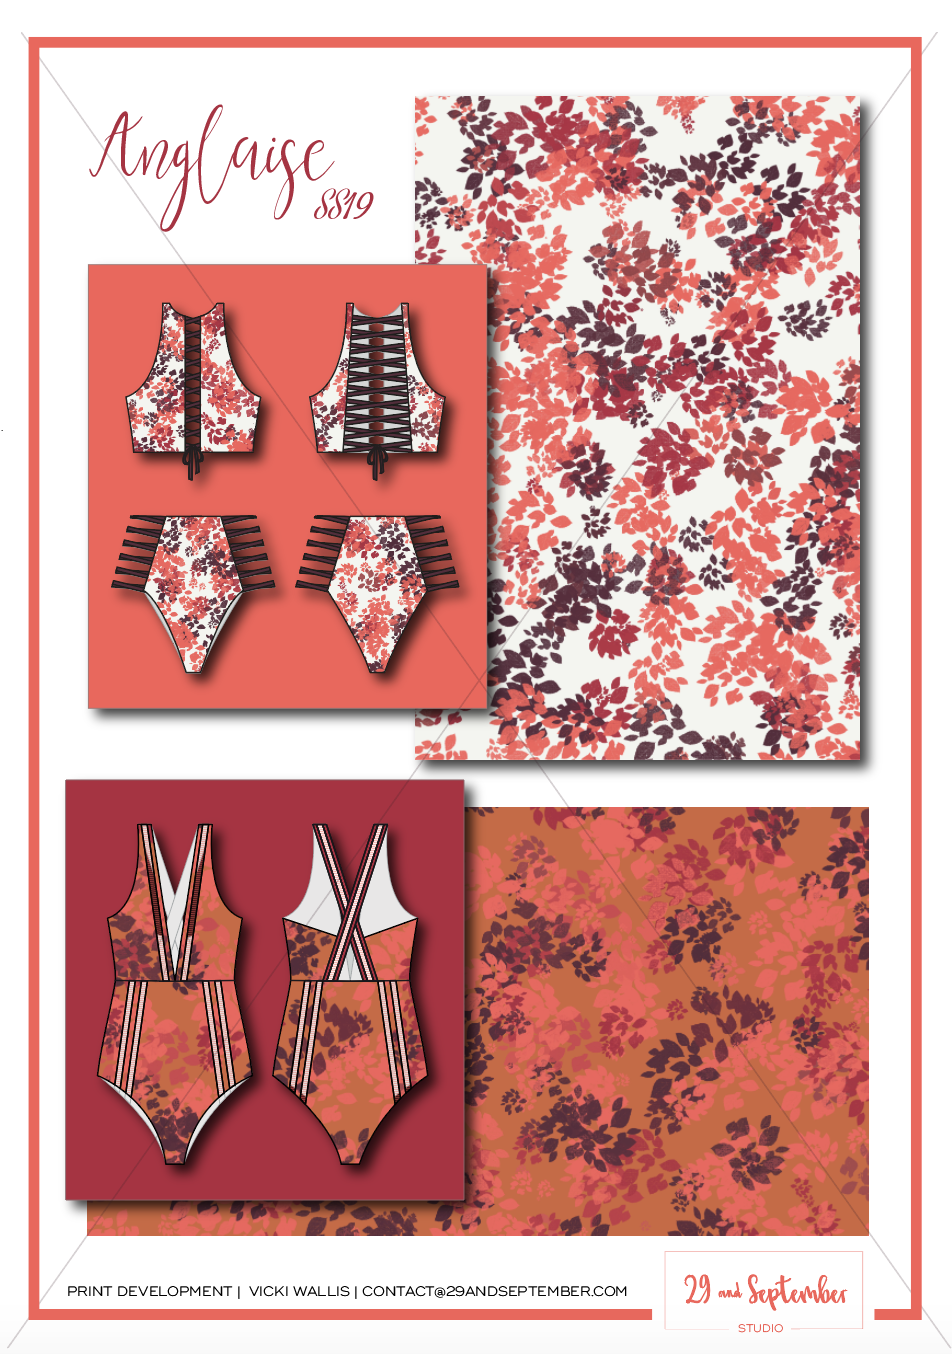 Swimwear inspiration | technical drawings for swimwear | textile print design